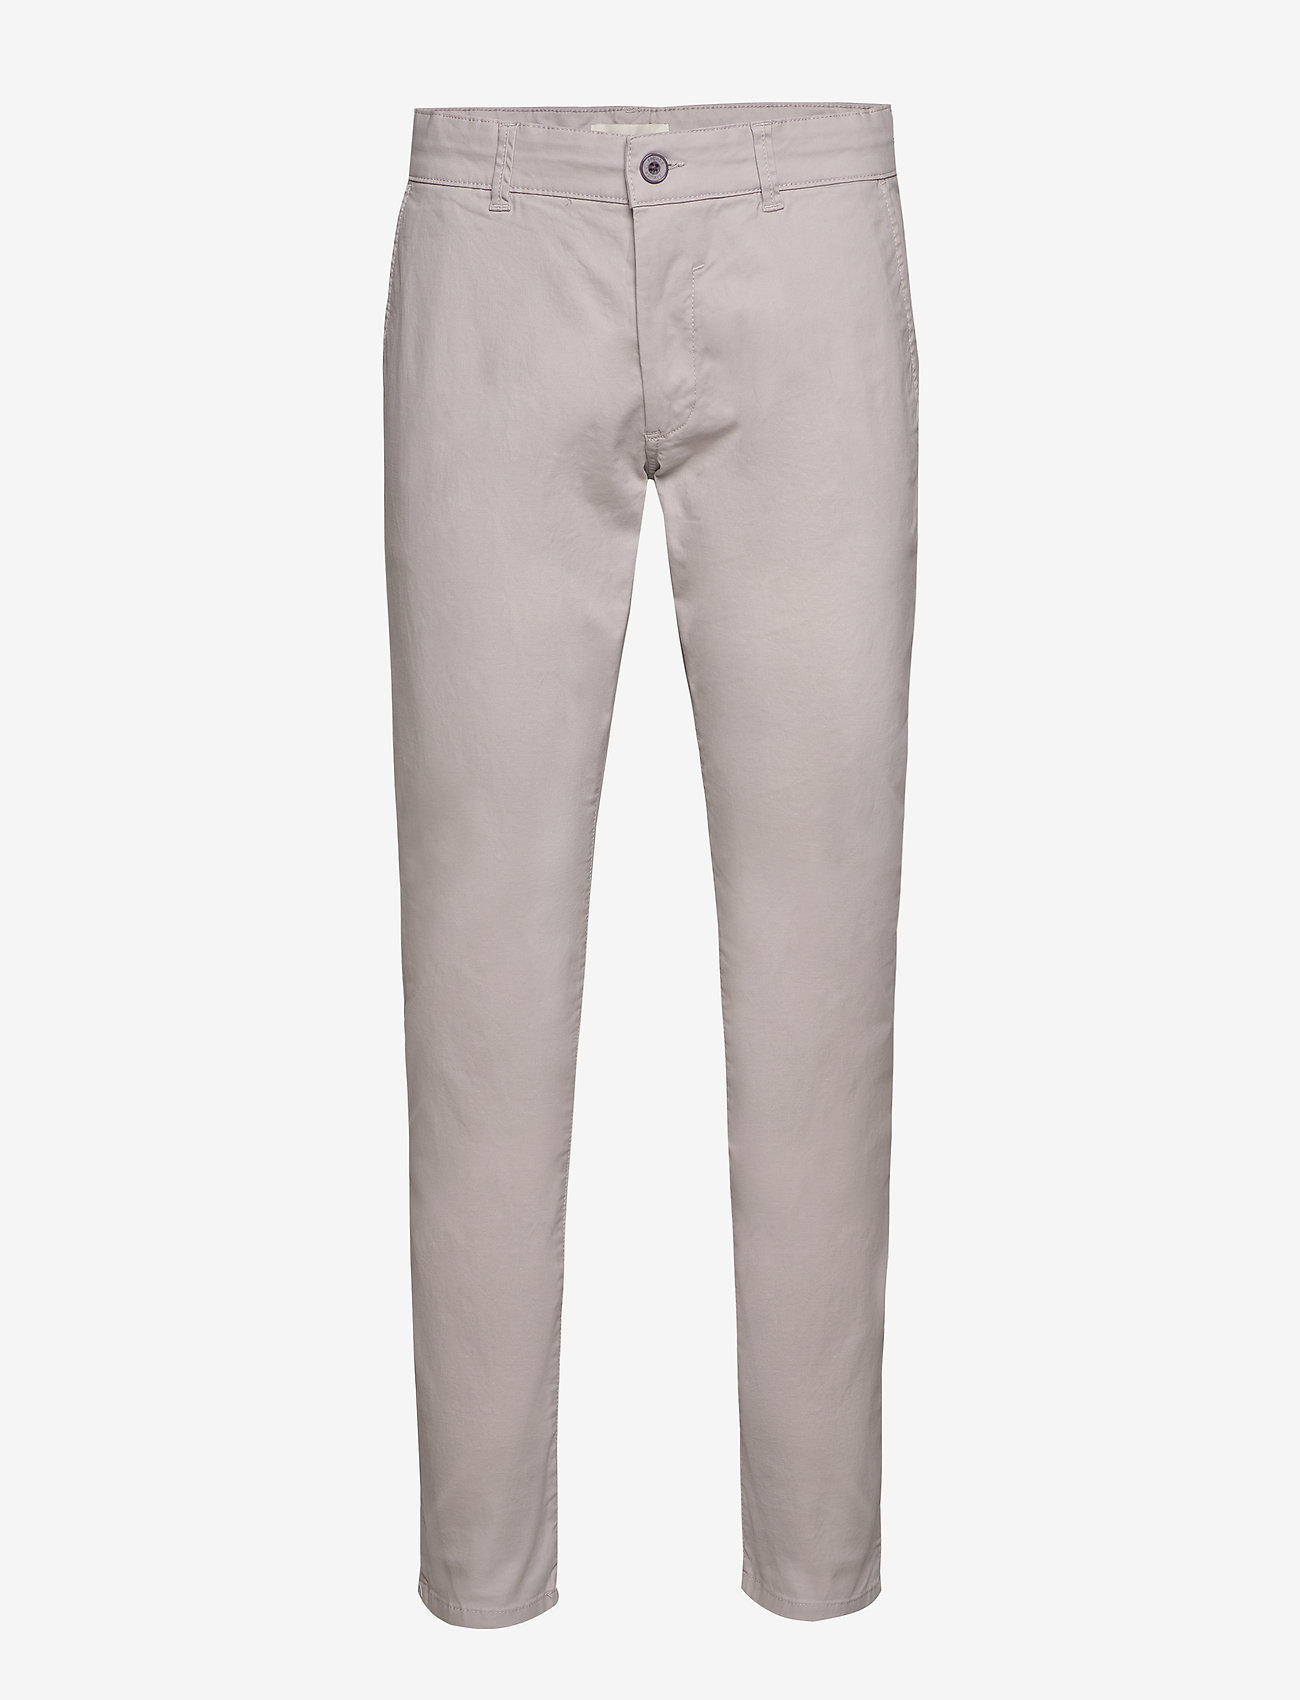 Esprit Casual - Pants woven - chino's - light grey - 0